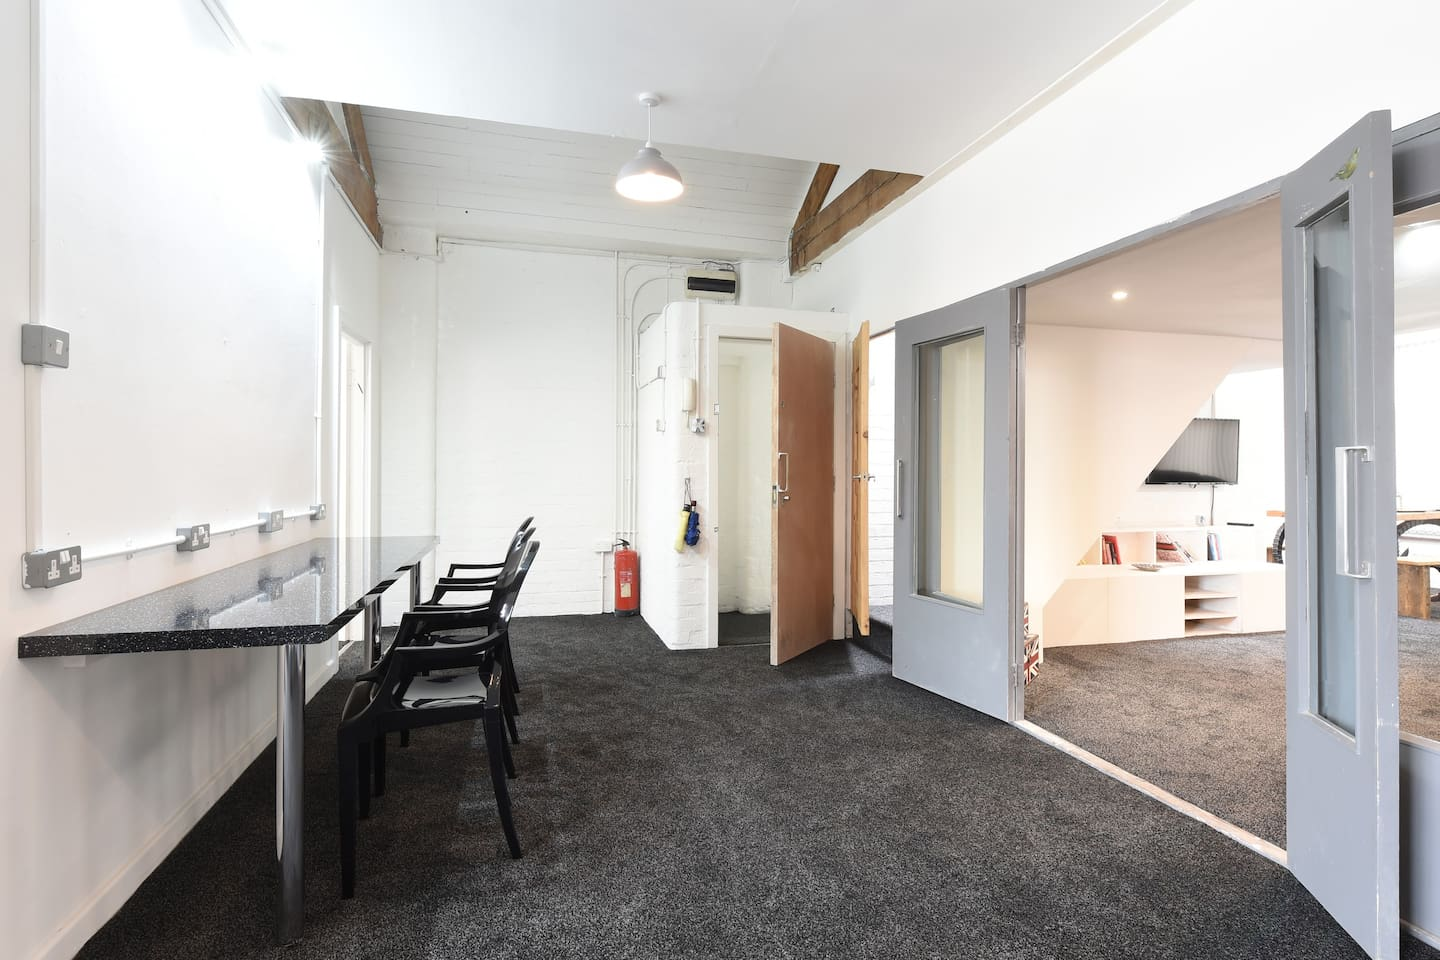 penthouse warehouse slps 18 61 flats for rent in manchester